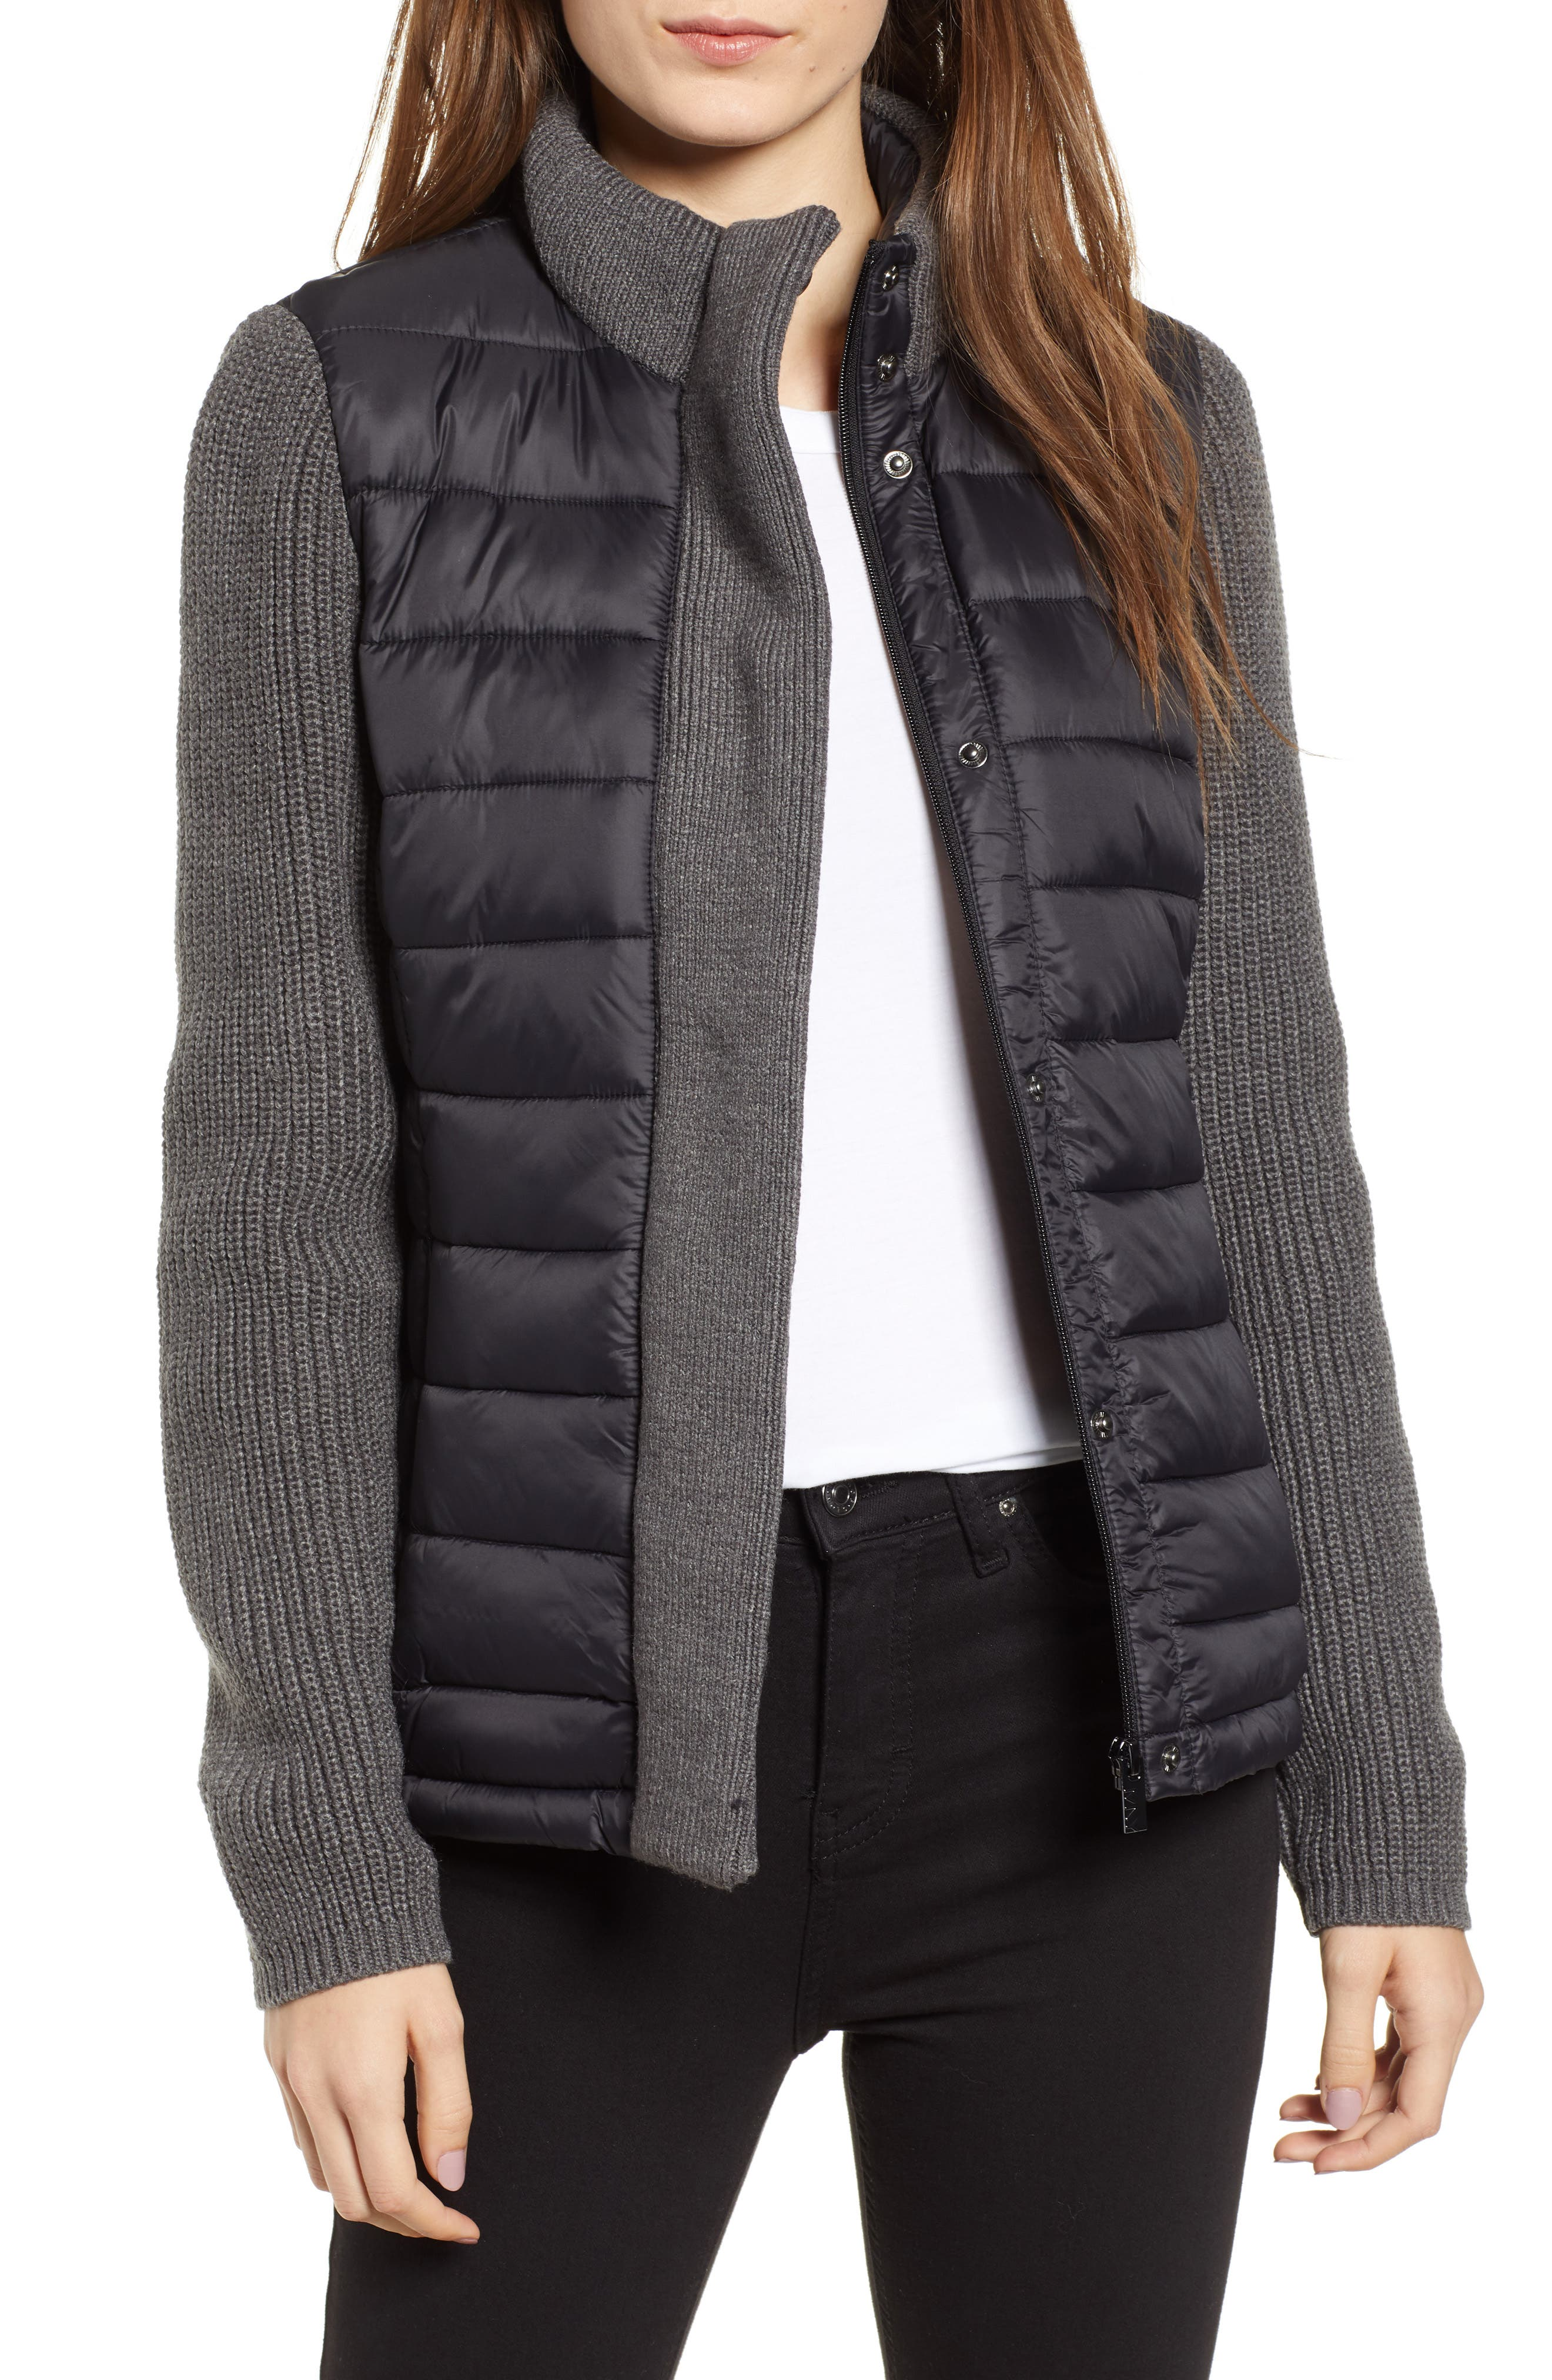 MARC NEW YORK, Mark New York Packable Knit Trim Puffer Jacket, Main thumbnail 1, color, BLACK/ GREY